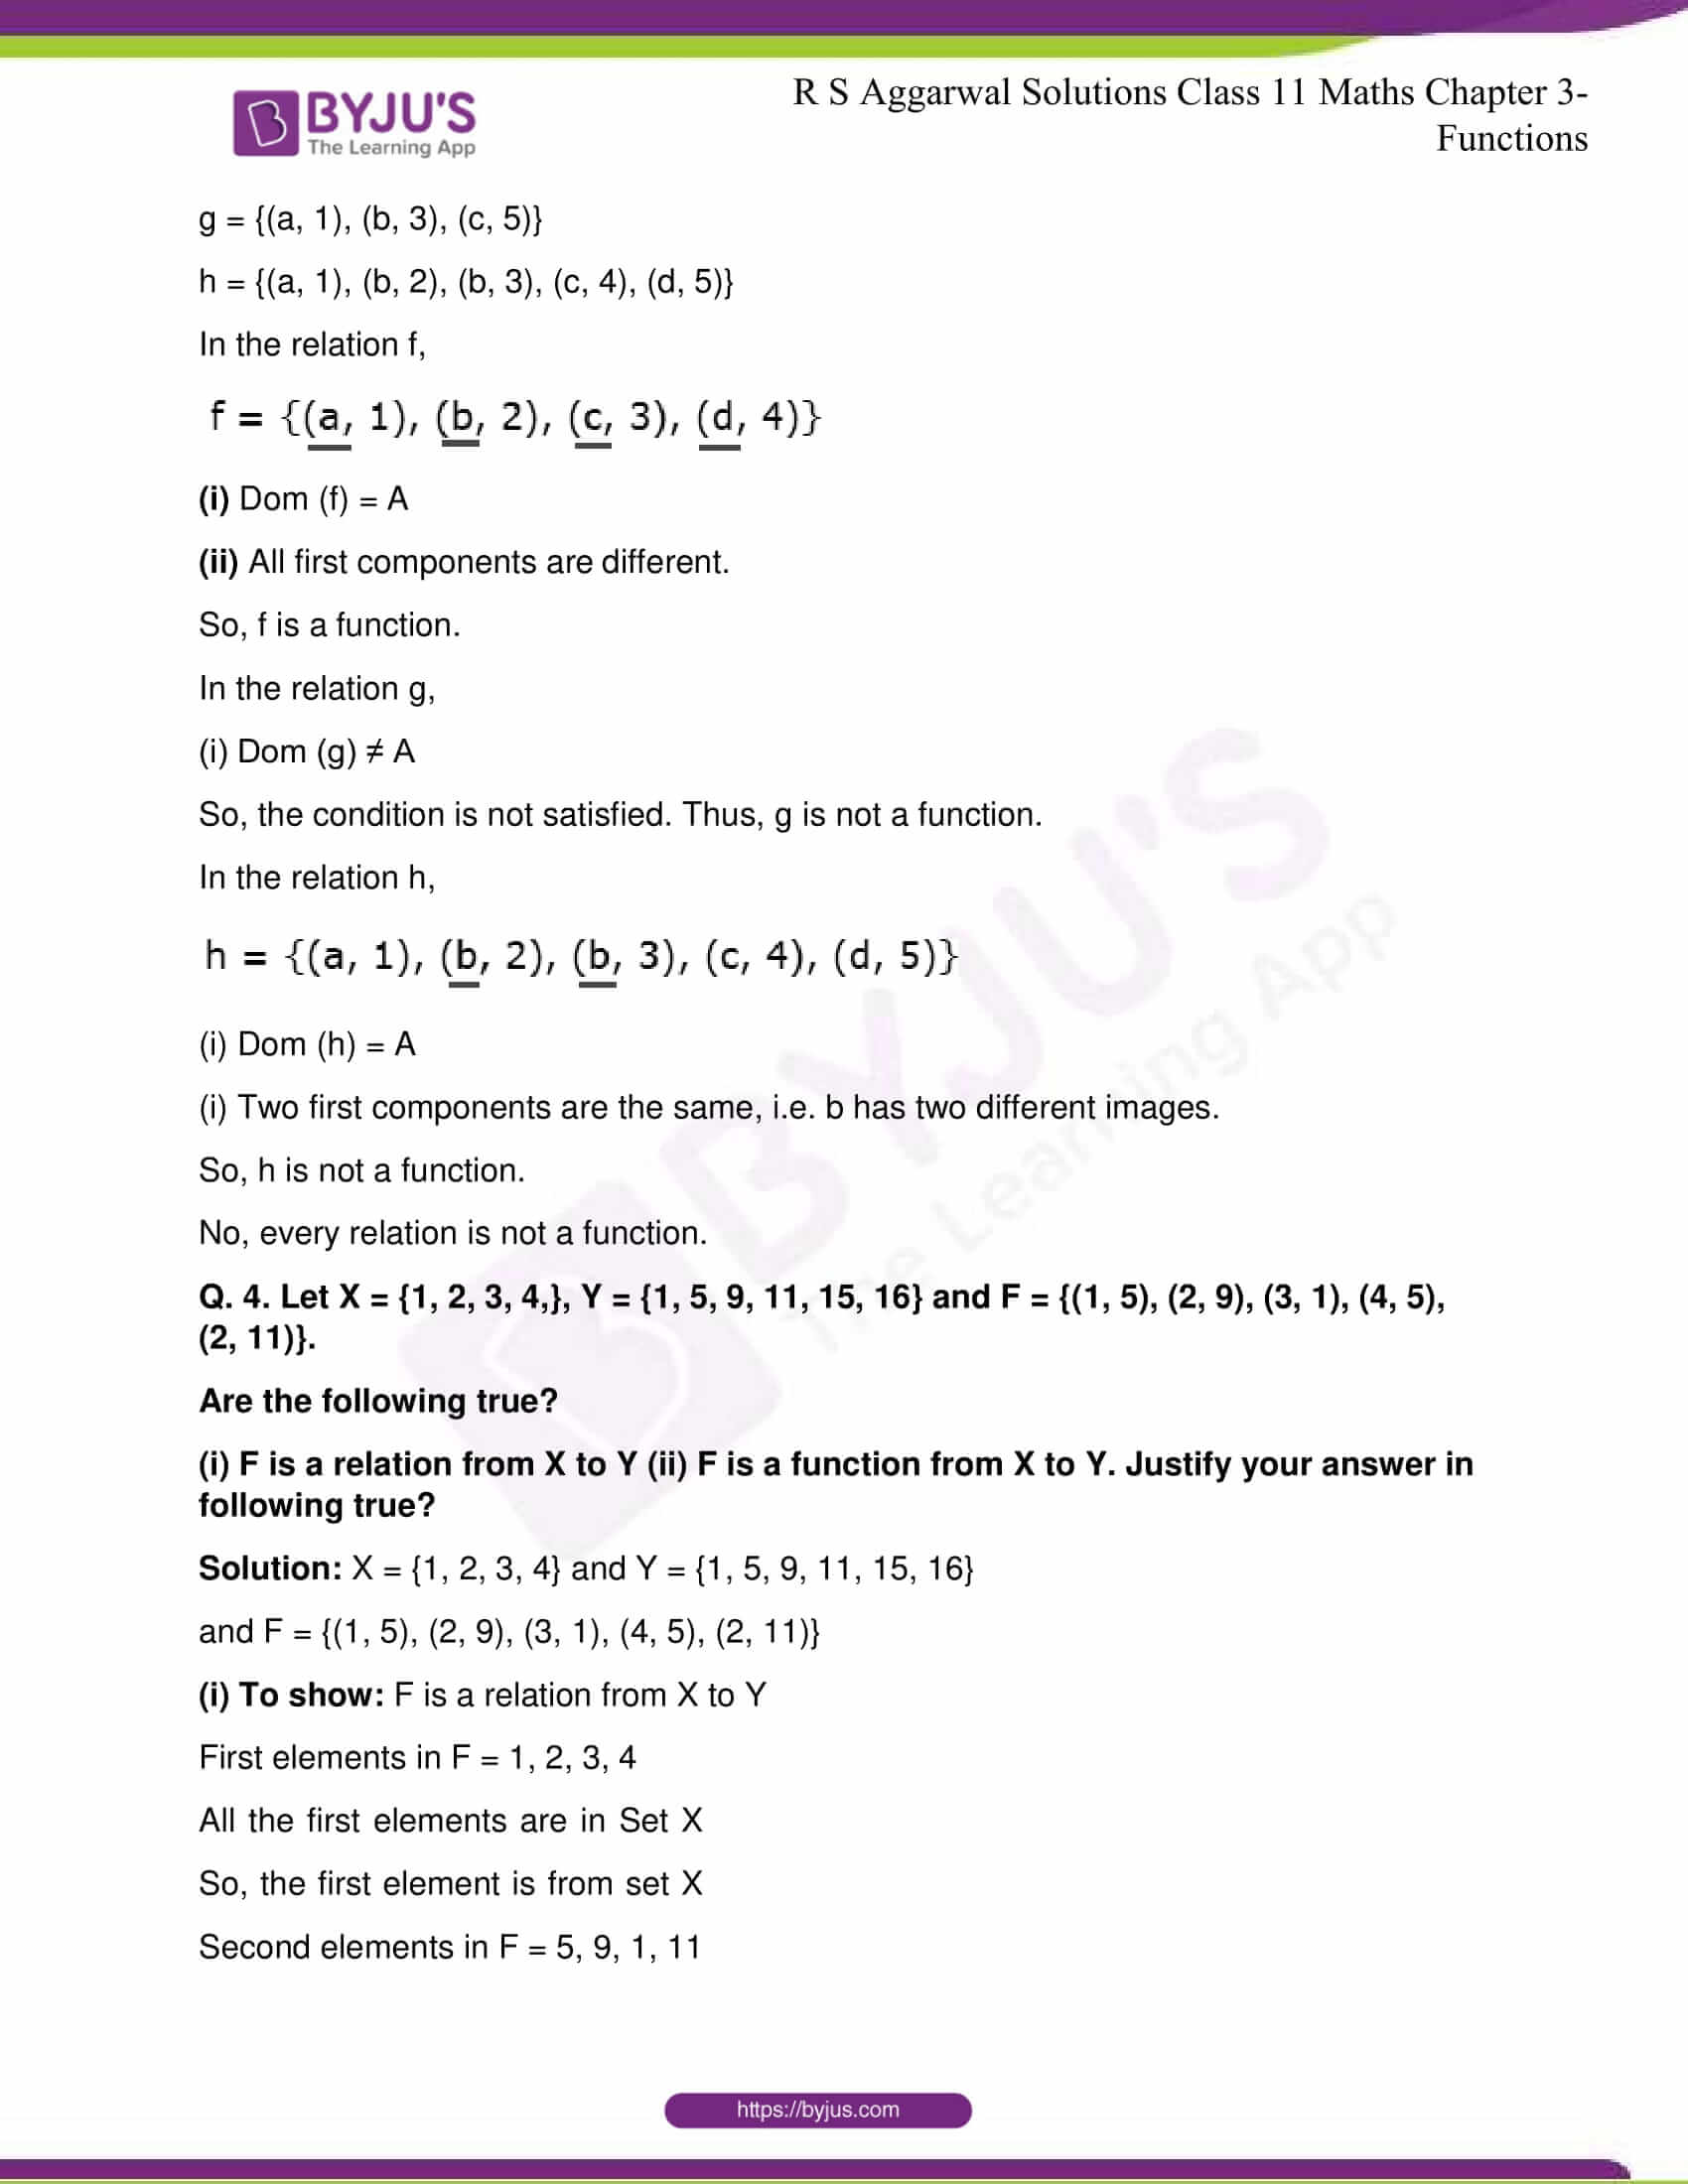 RS Aggarwal Sol Class 11 Maths Chapter 3